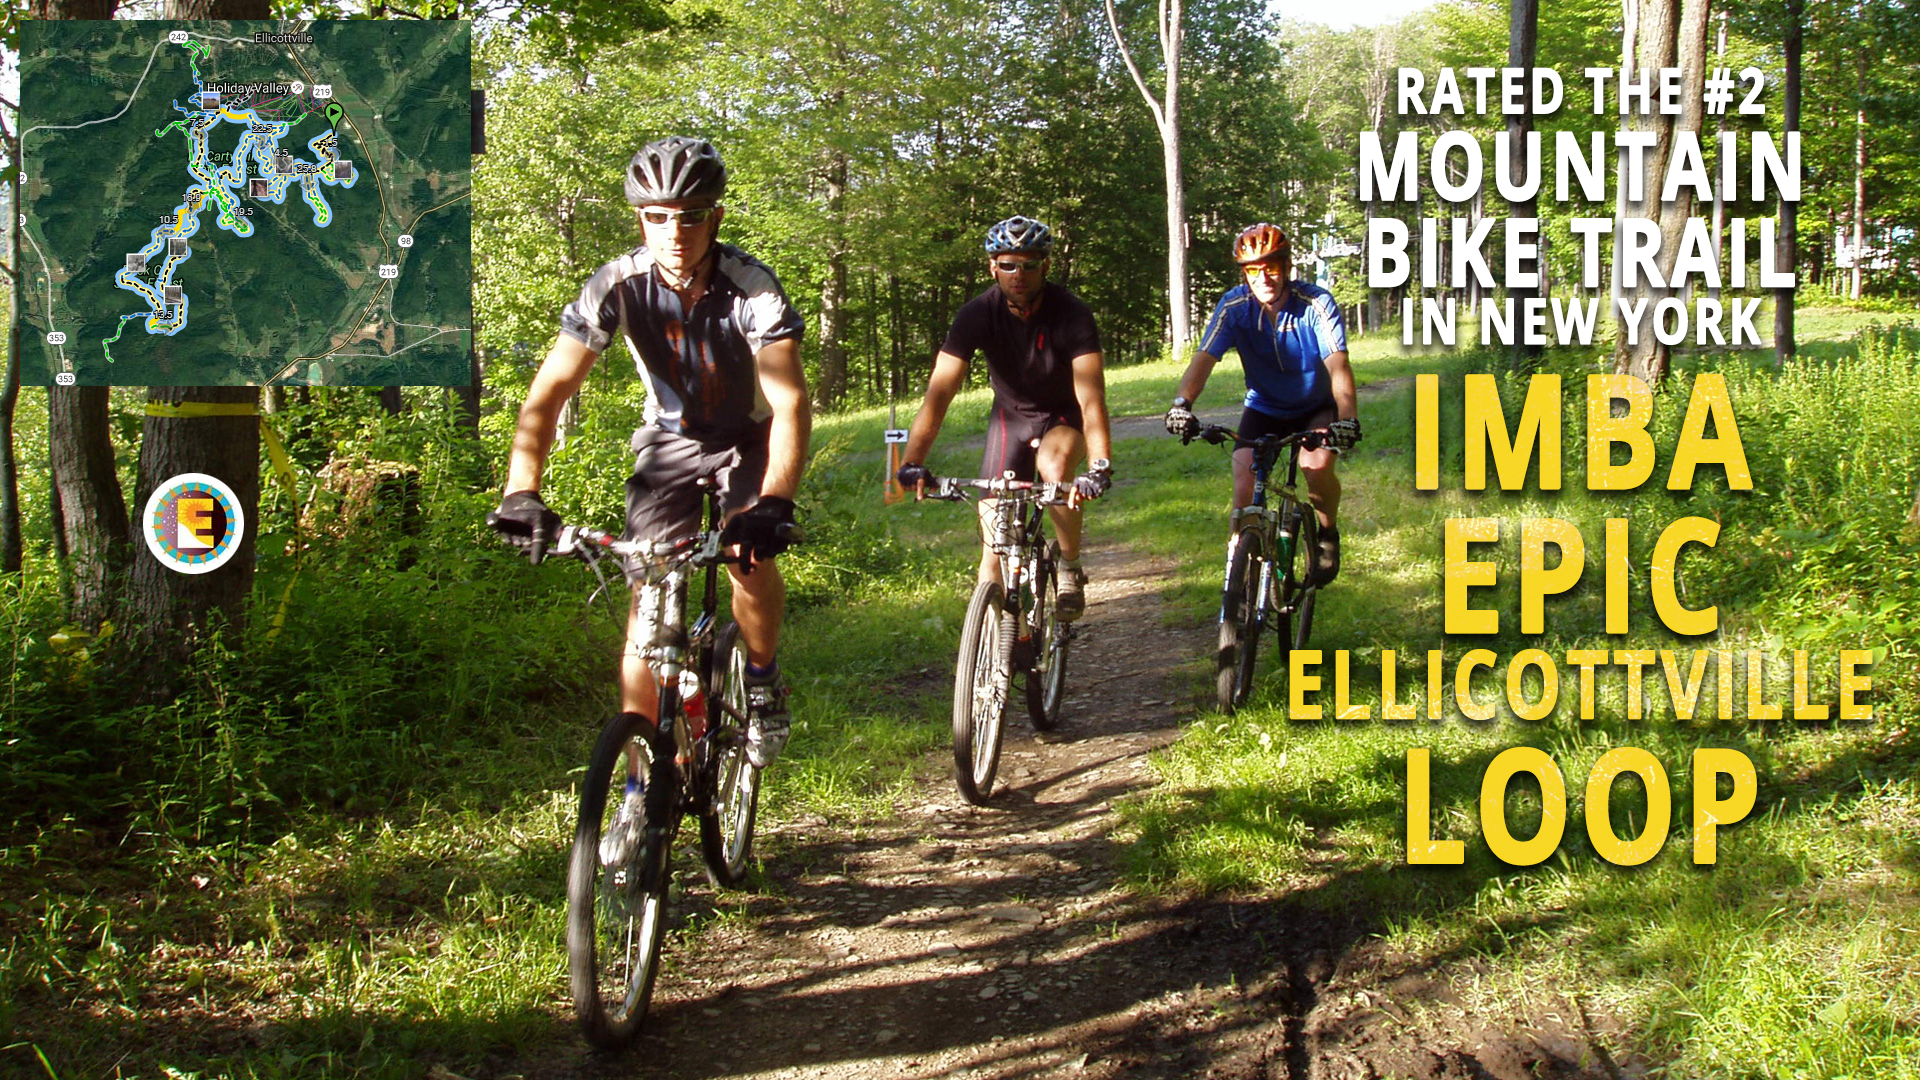 IMBA Epic Ellicottville Loop